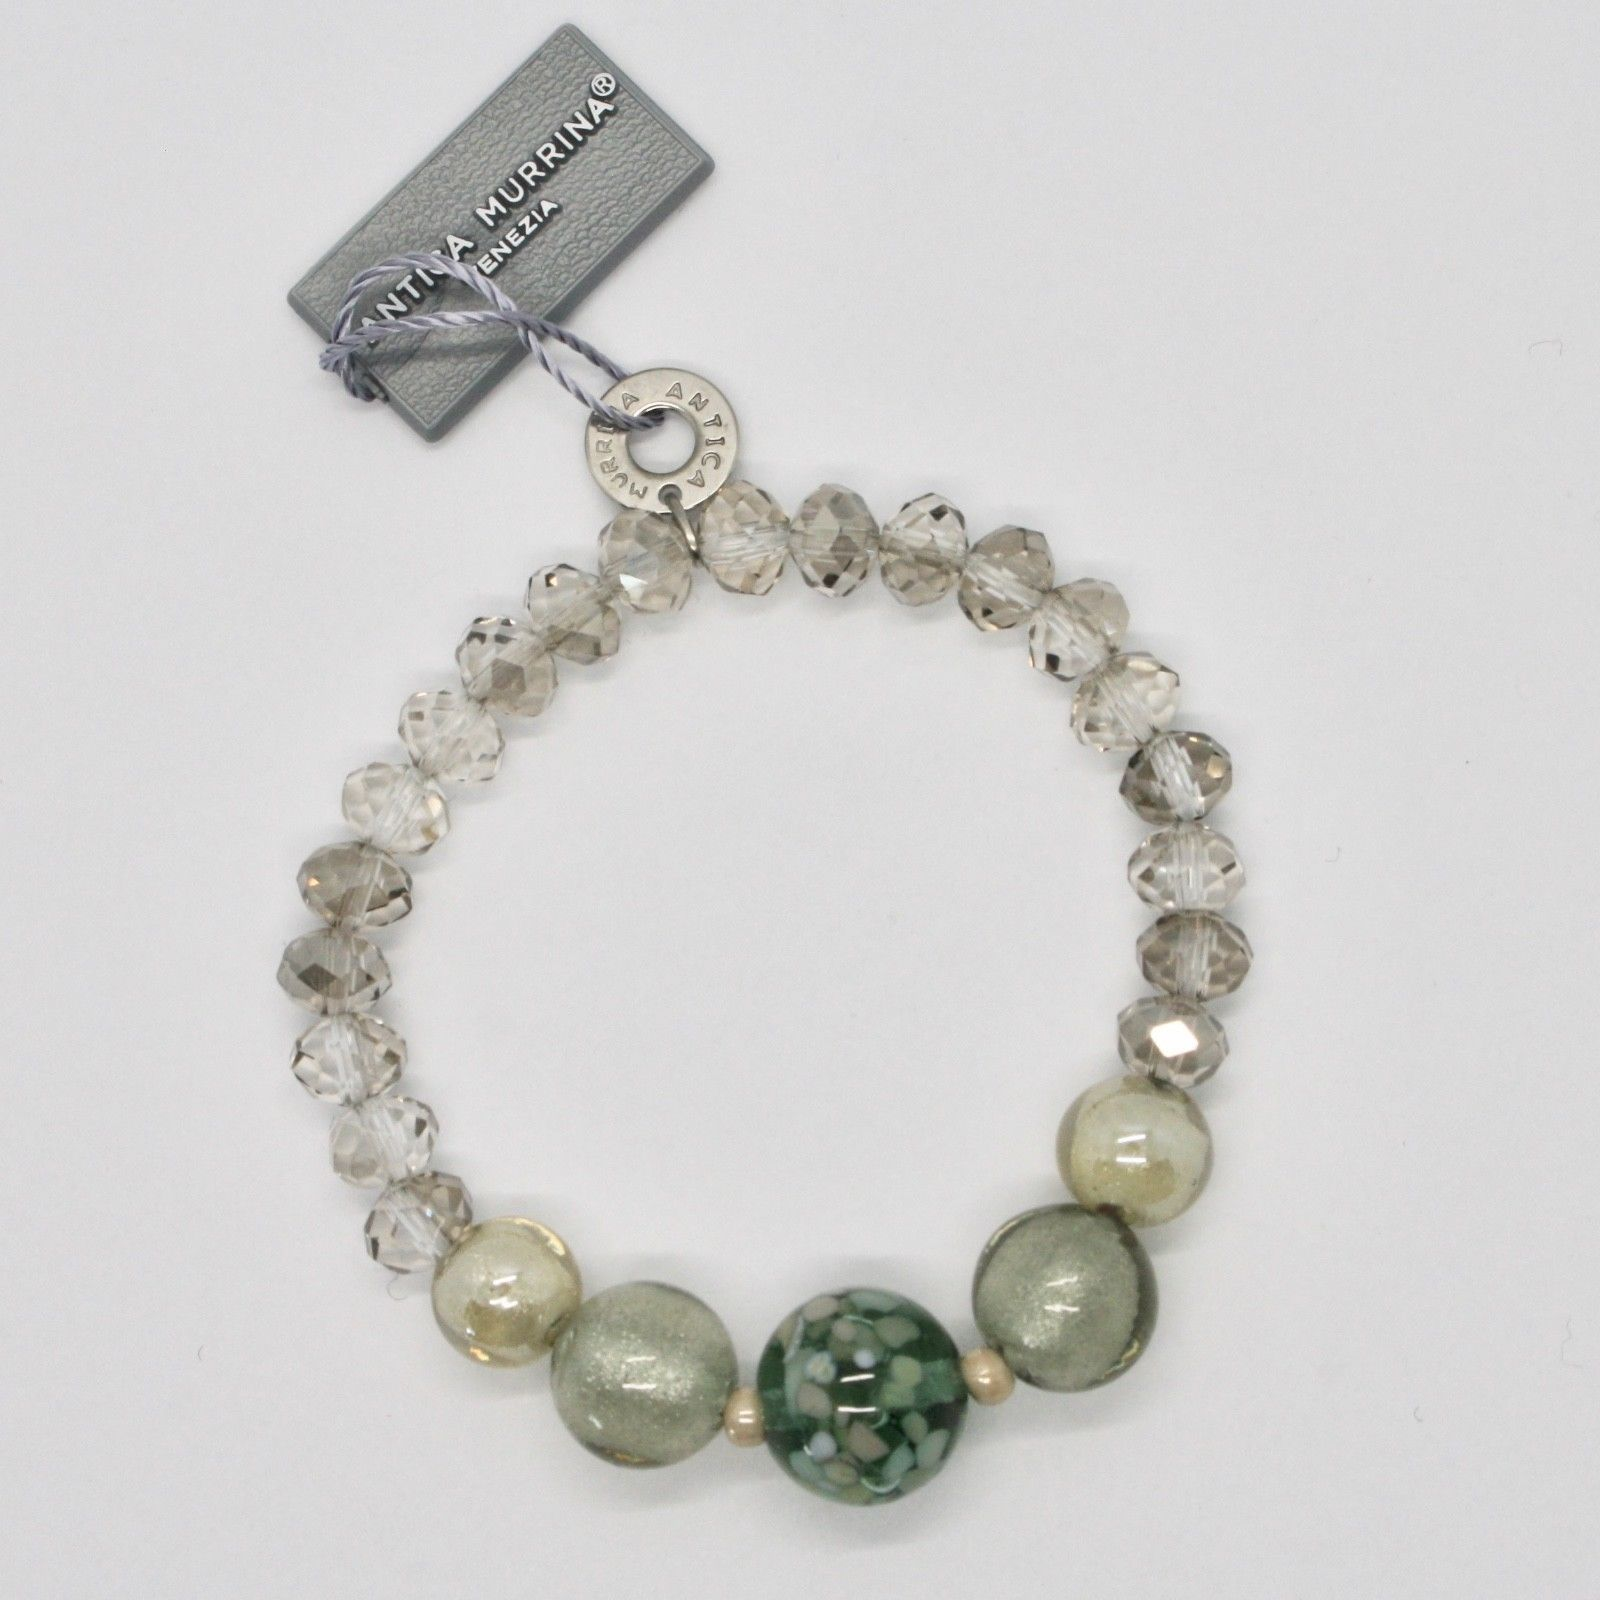 ANTICA MURRINA VENEZIA BRACELET WITH MURANO GLASS BEIGE GREEN GRAY BR797A34